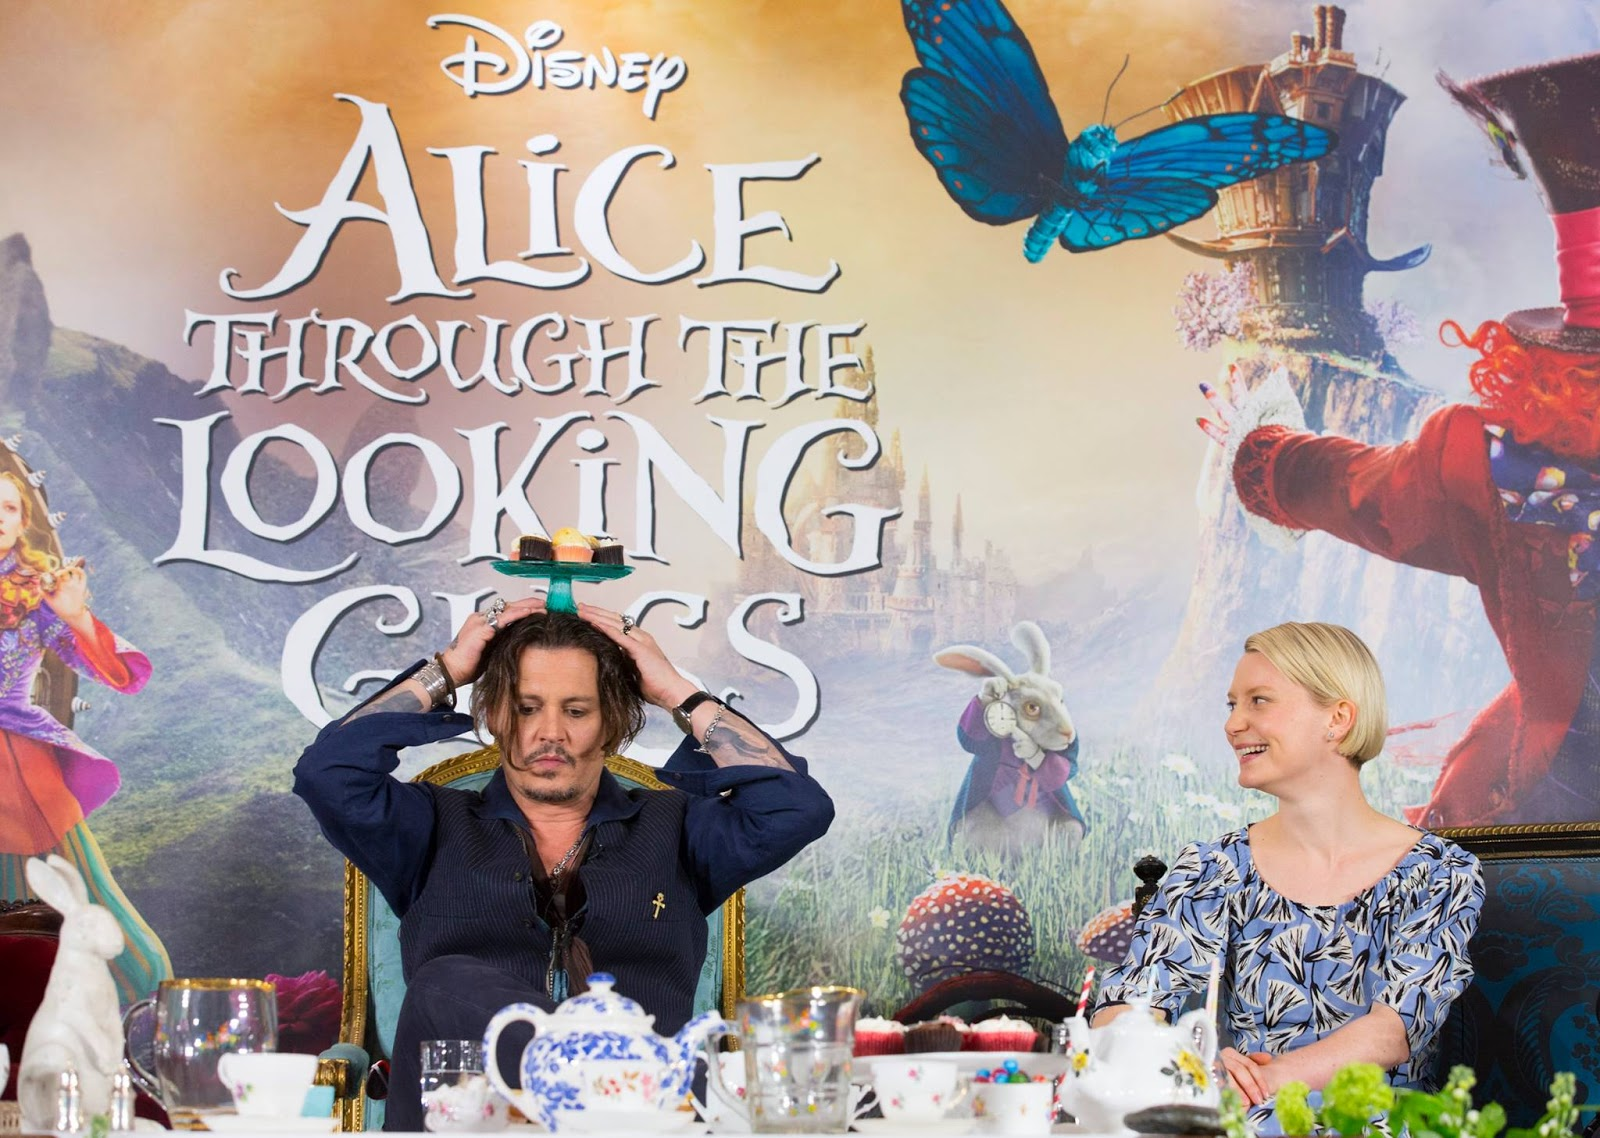 Alice Through the Looking Glass (2016 film) - Wikipedia